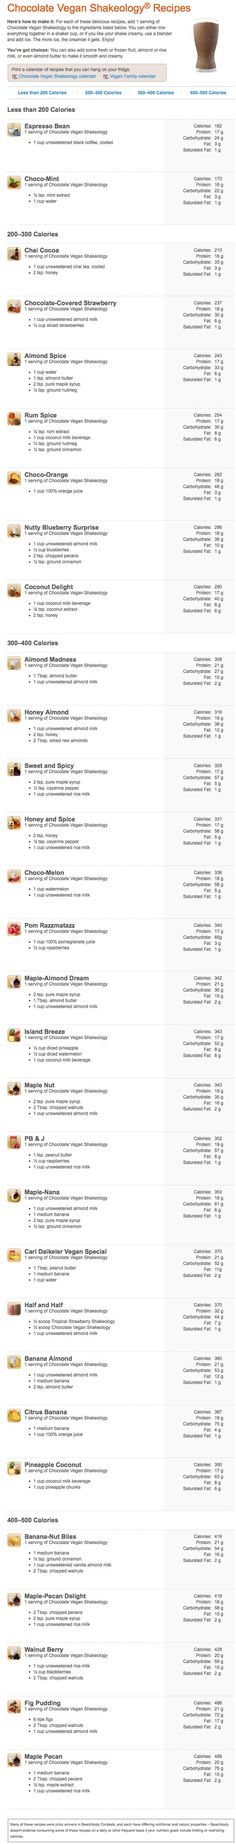 Complete Shakeology Review http://www.allworkoutroutines.com/shakeology-review-ingredients-and-recipes